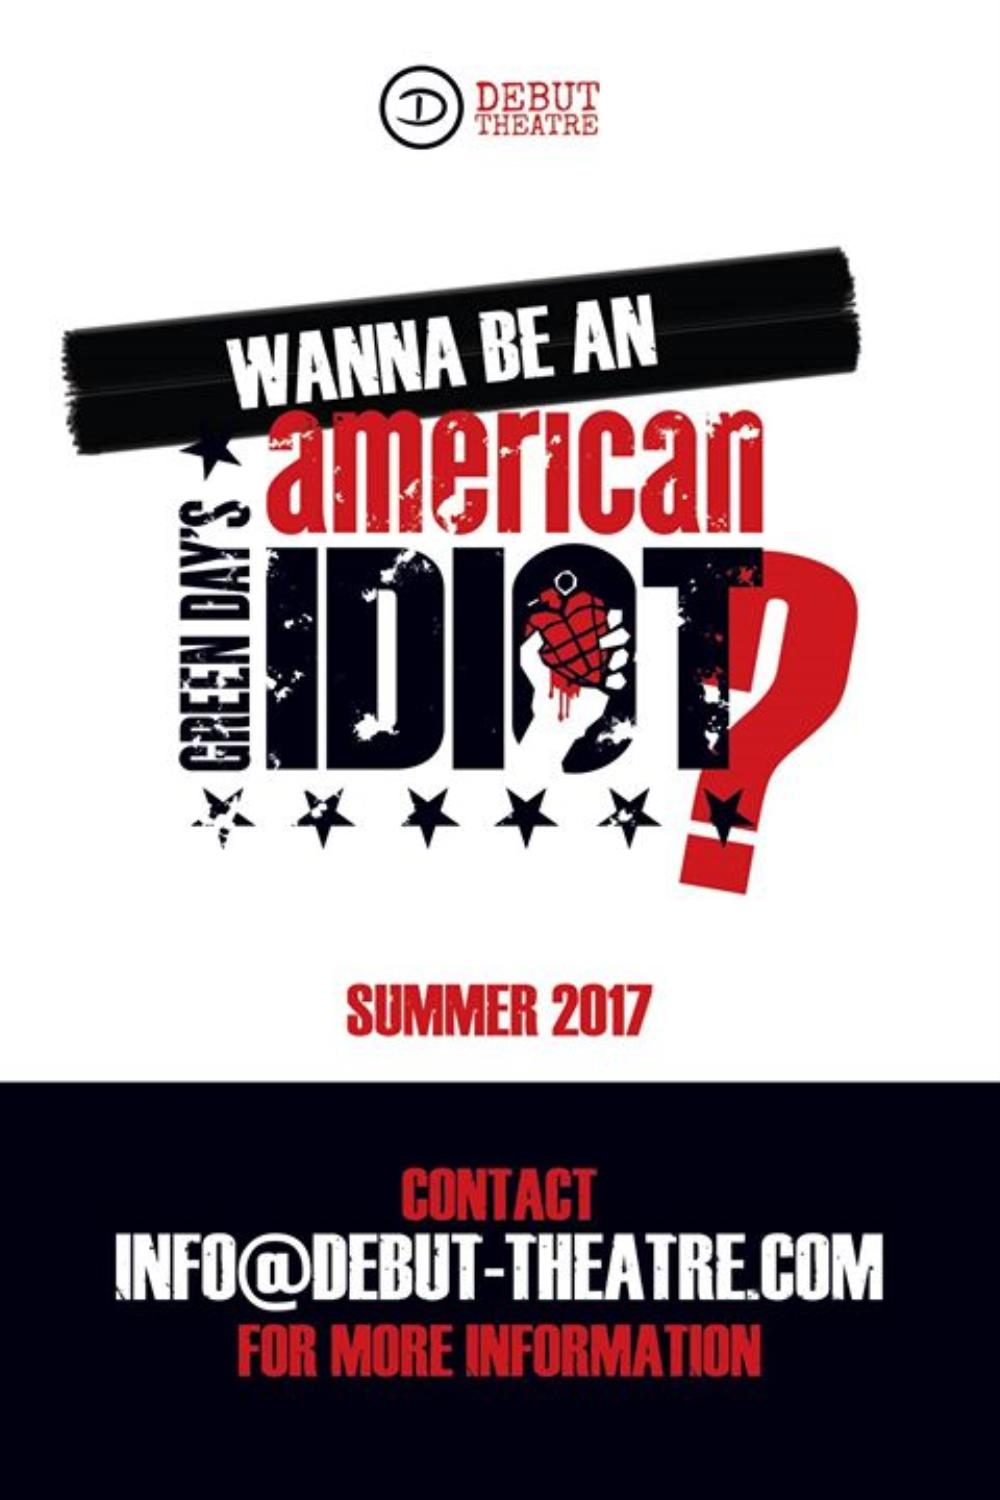 Wanna be an American Idiot